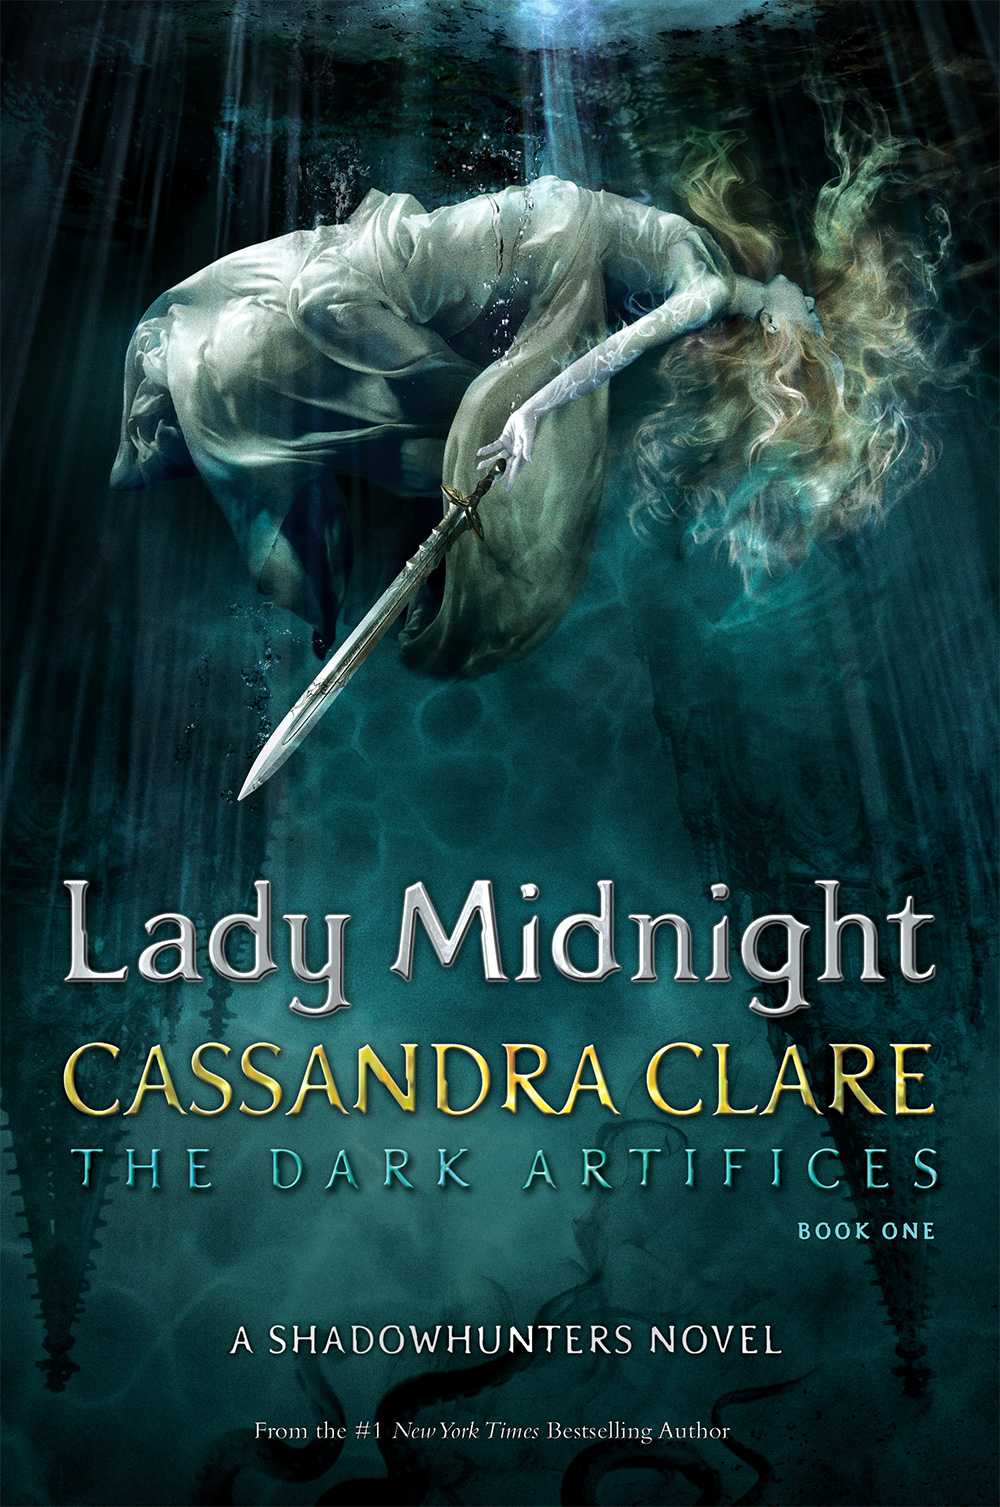 Shadowhunters -  Lady Midnight Chapter One: A Shadowhunterstv.com Exclusive! - 1003